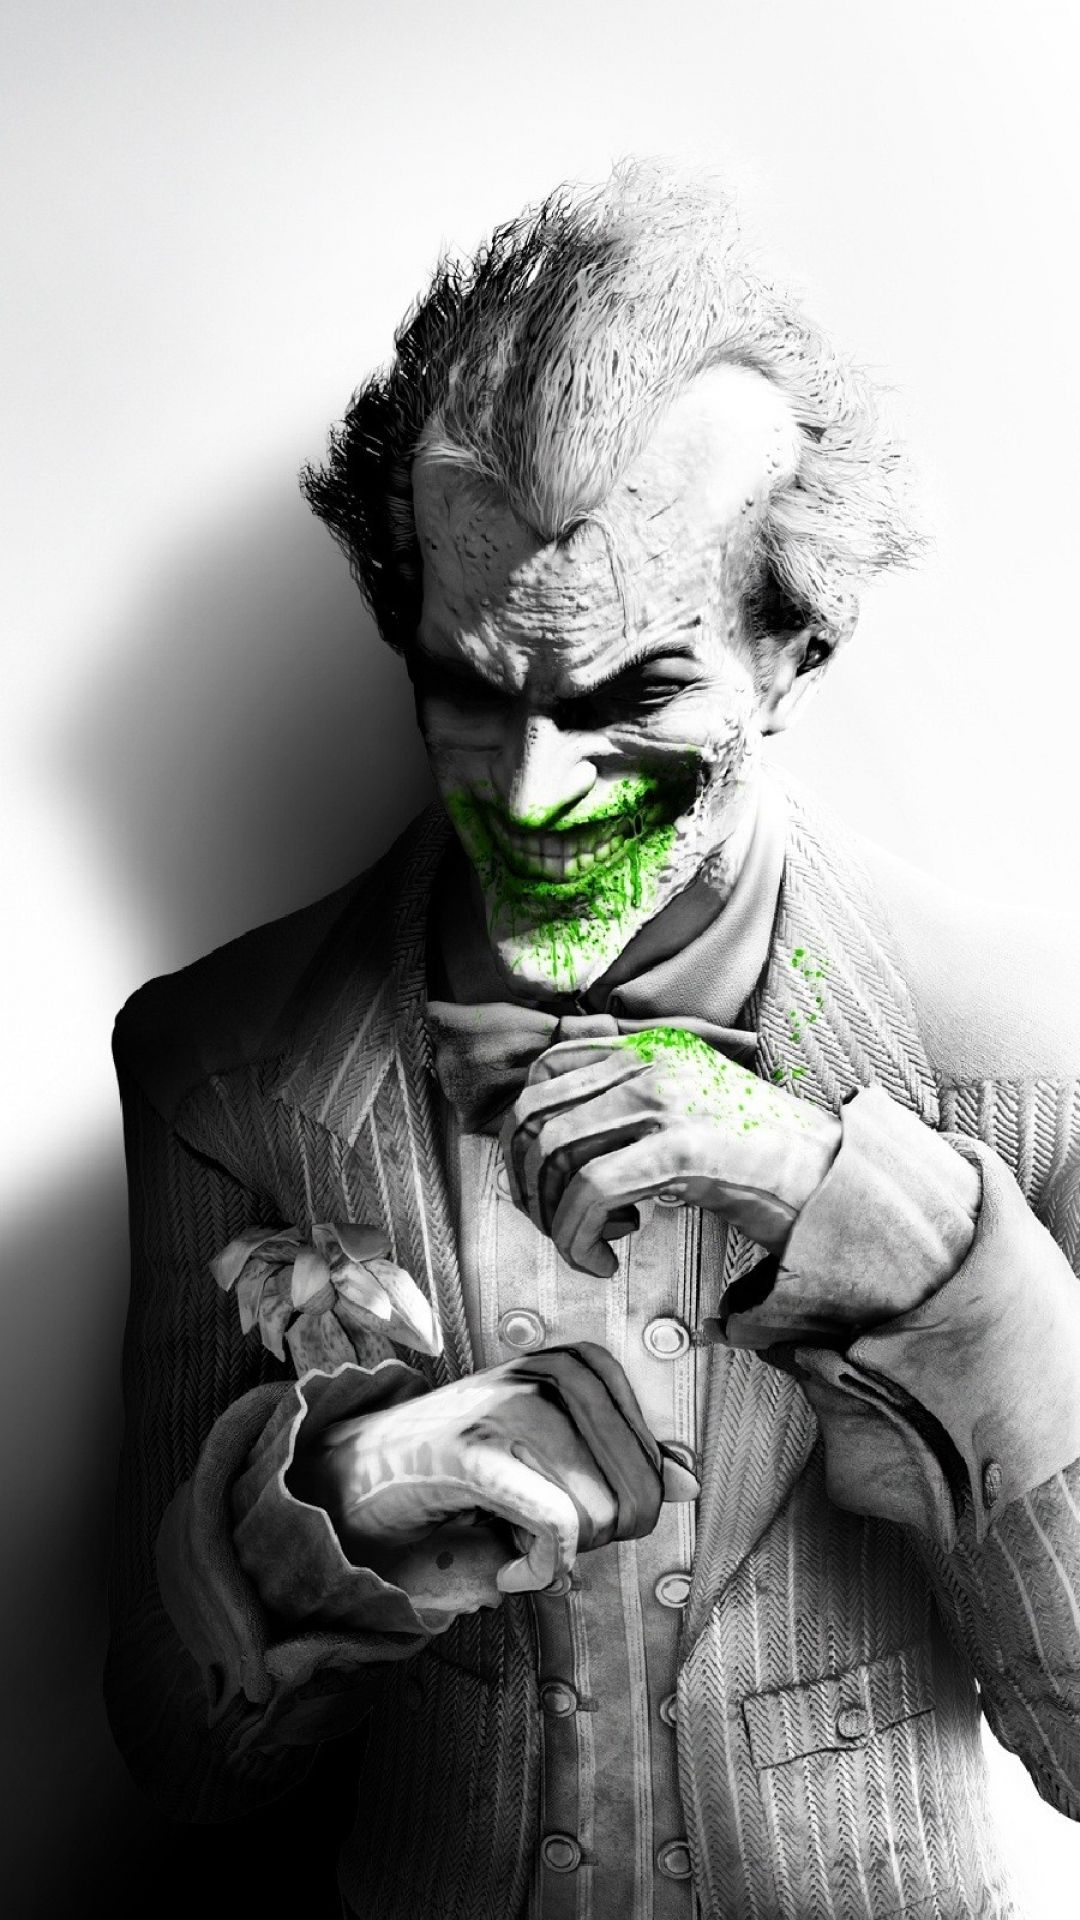 Download Wallpaper 1080x1920 Batman Arkham City Joker Smile Suit Flower Fan Art Black And White Sony Xperia Z Joker Arkham Arkham City Batman Arkham City